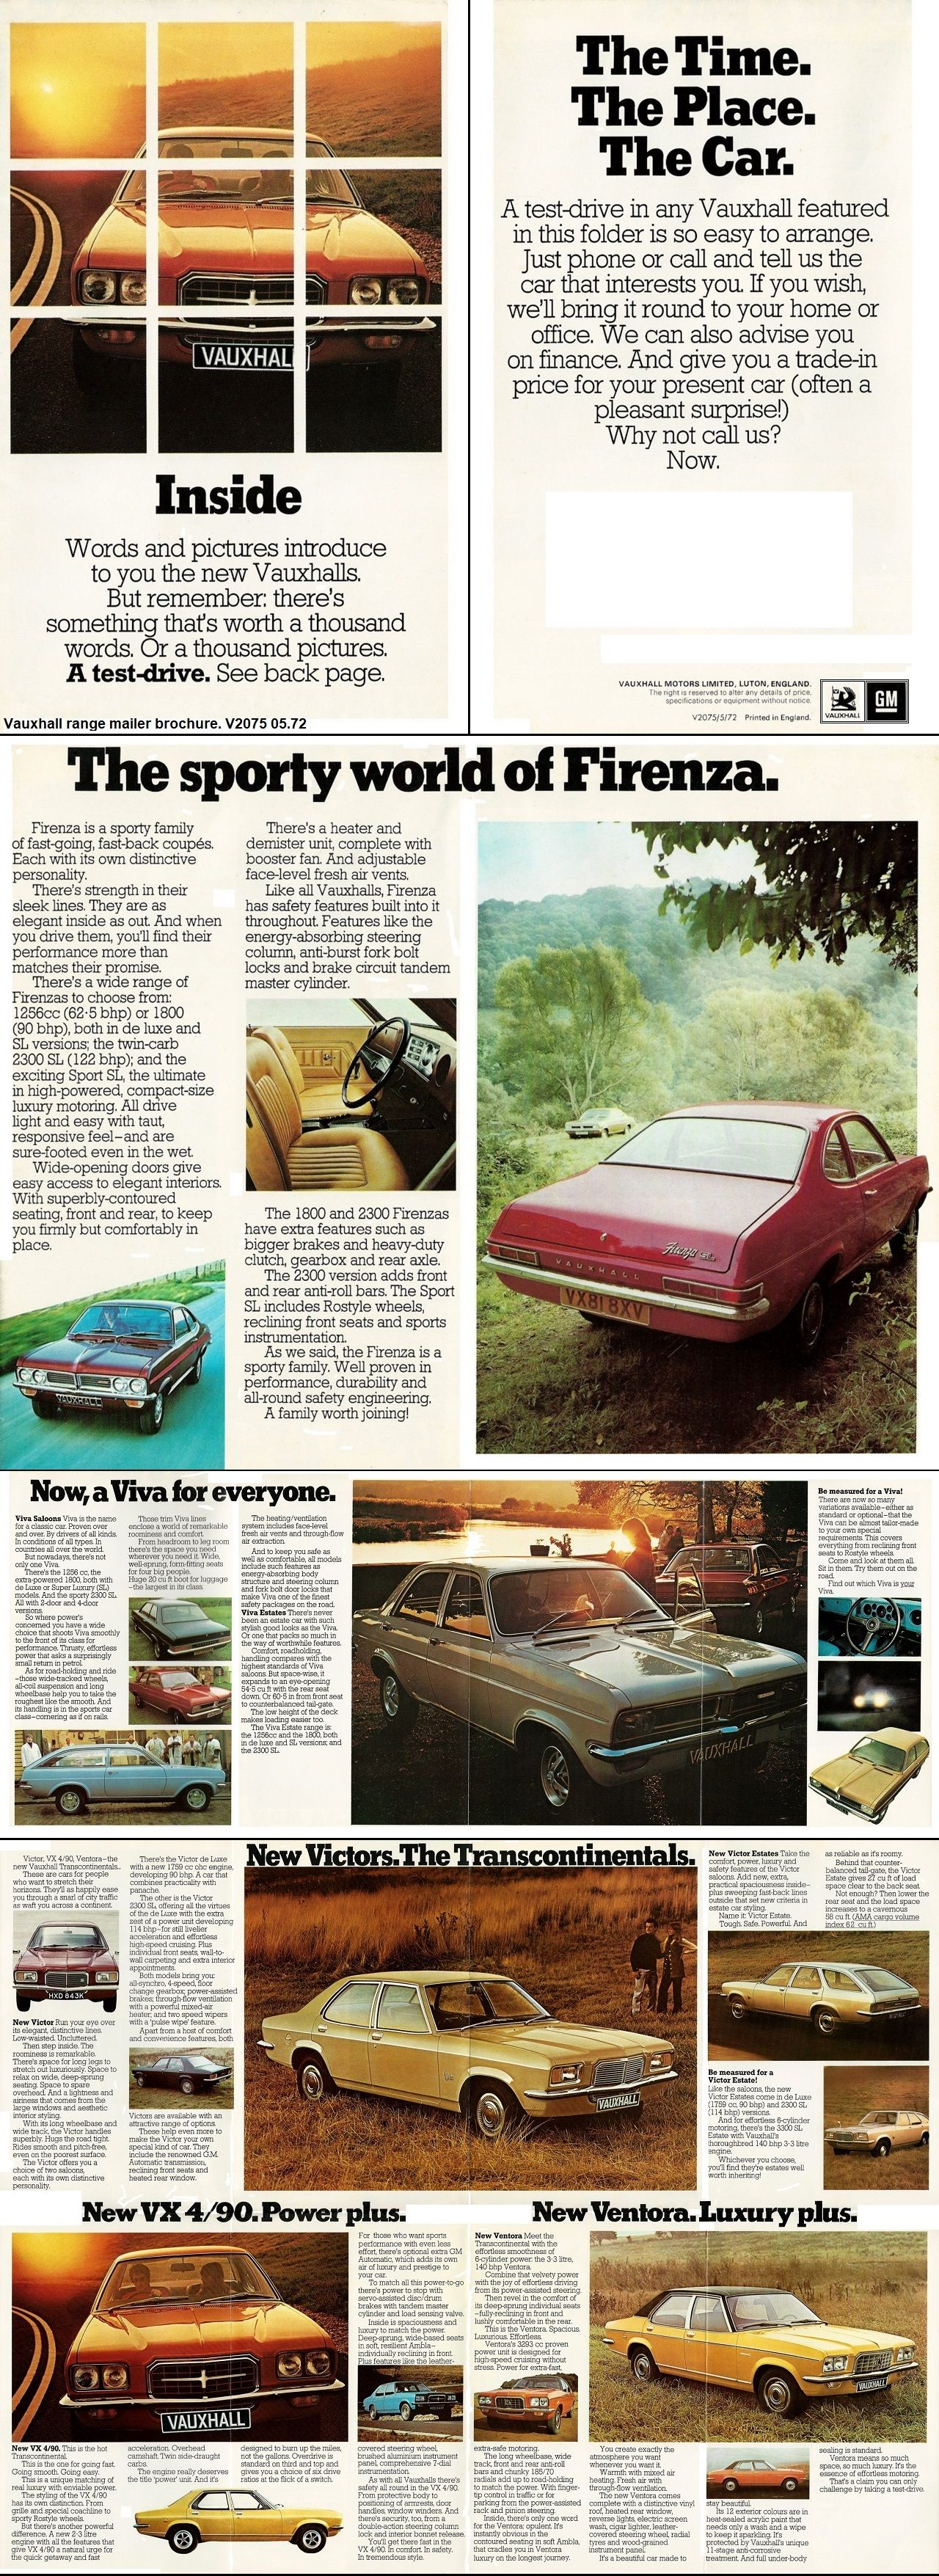 Pin By Rebelghost 50s A Furious Love On Vauxhall Hc Firenza Brochures Uk Car Ads Vauxhall Vintage Cars